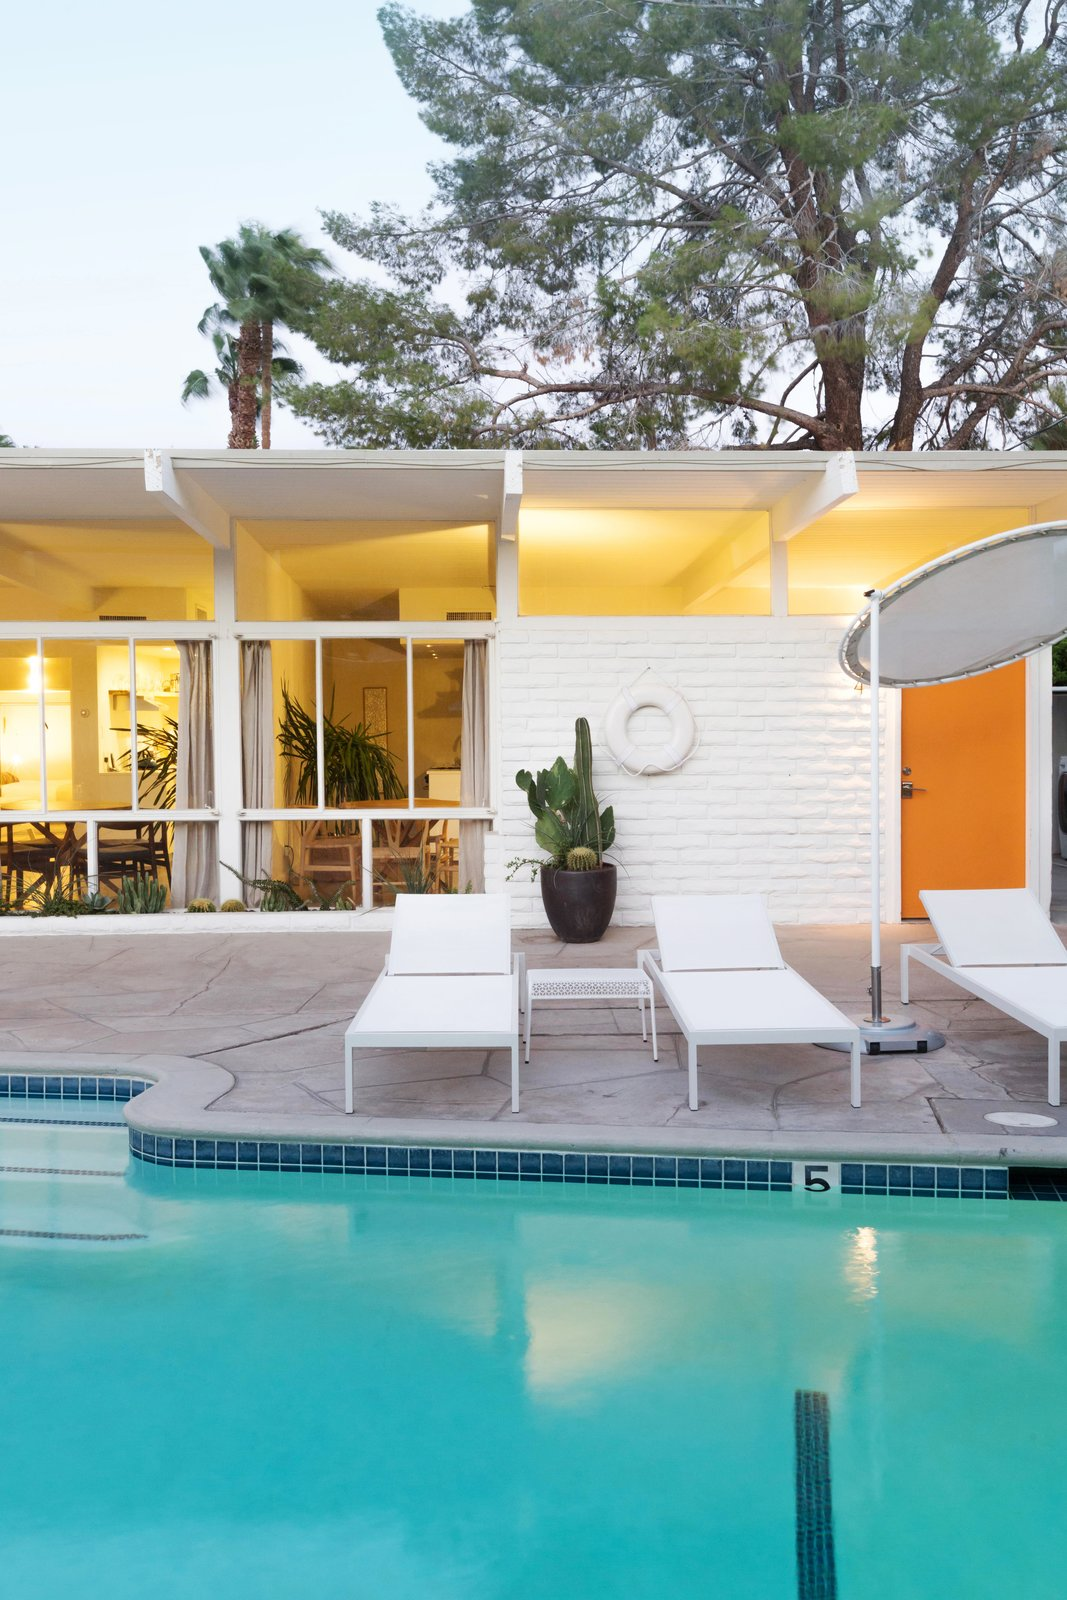 Photo 10 of 12 in A Celebrated Palm Springs Hotel Asks $1.8M